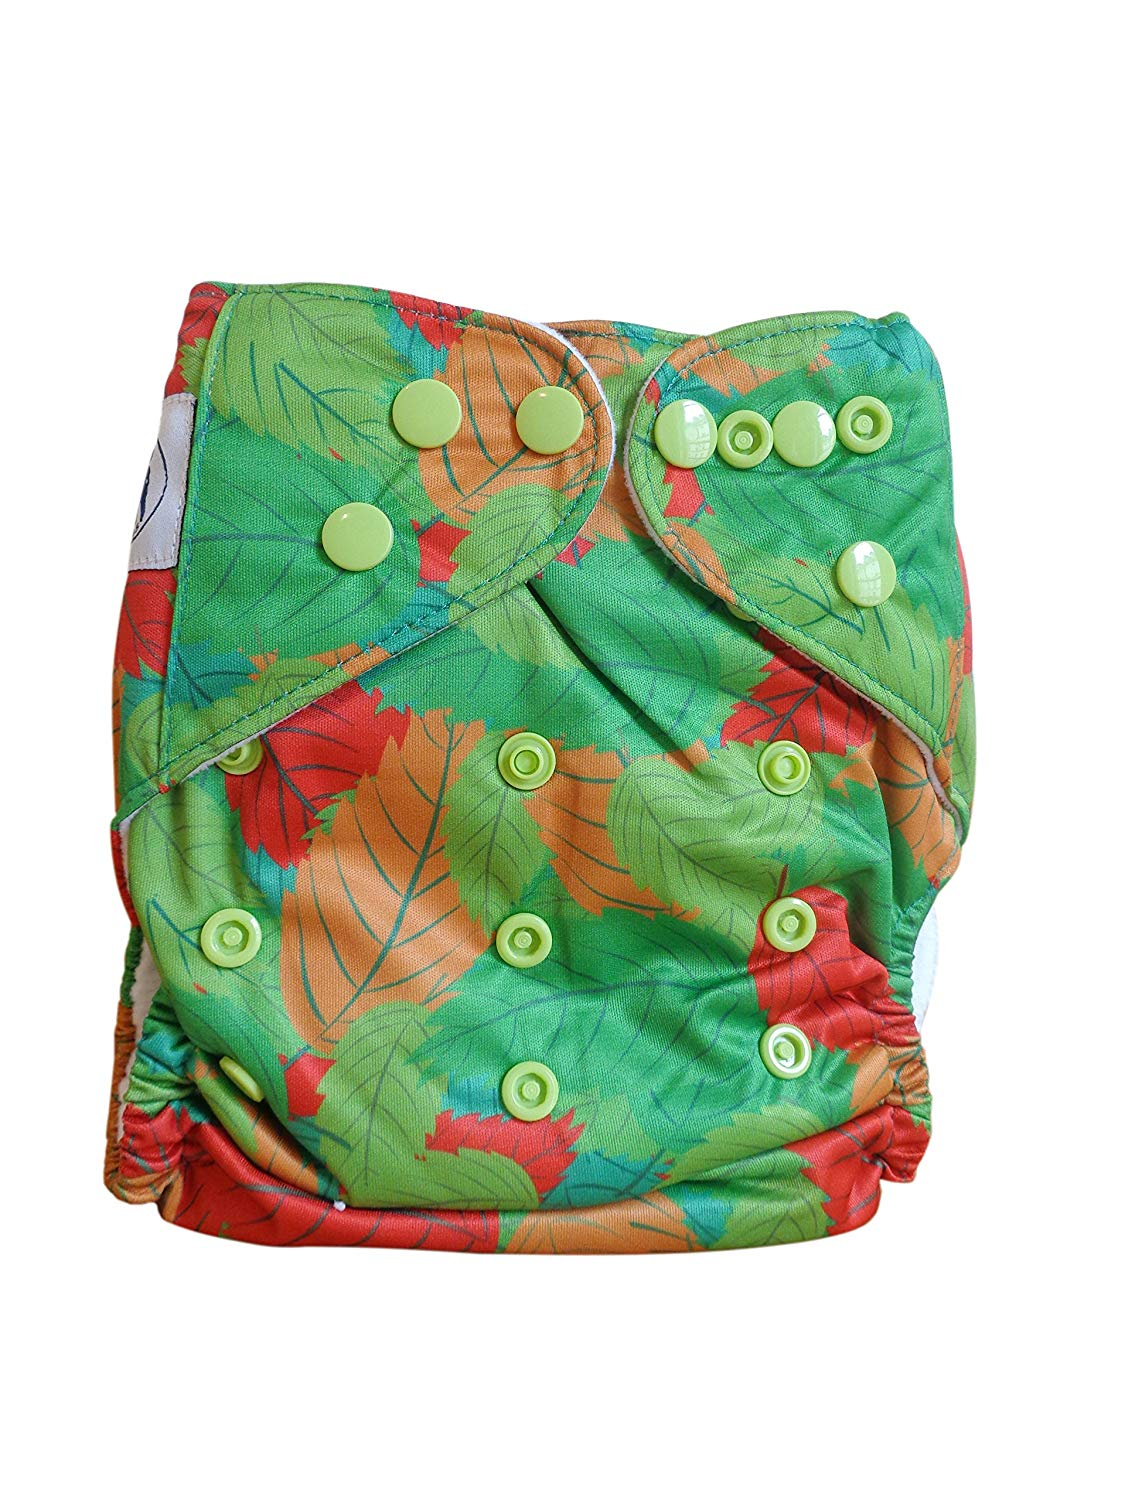 inc 2 inserts each Three Little Imps Unisex Patterned Cloth Nappies Set of 6